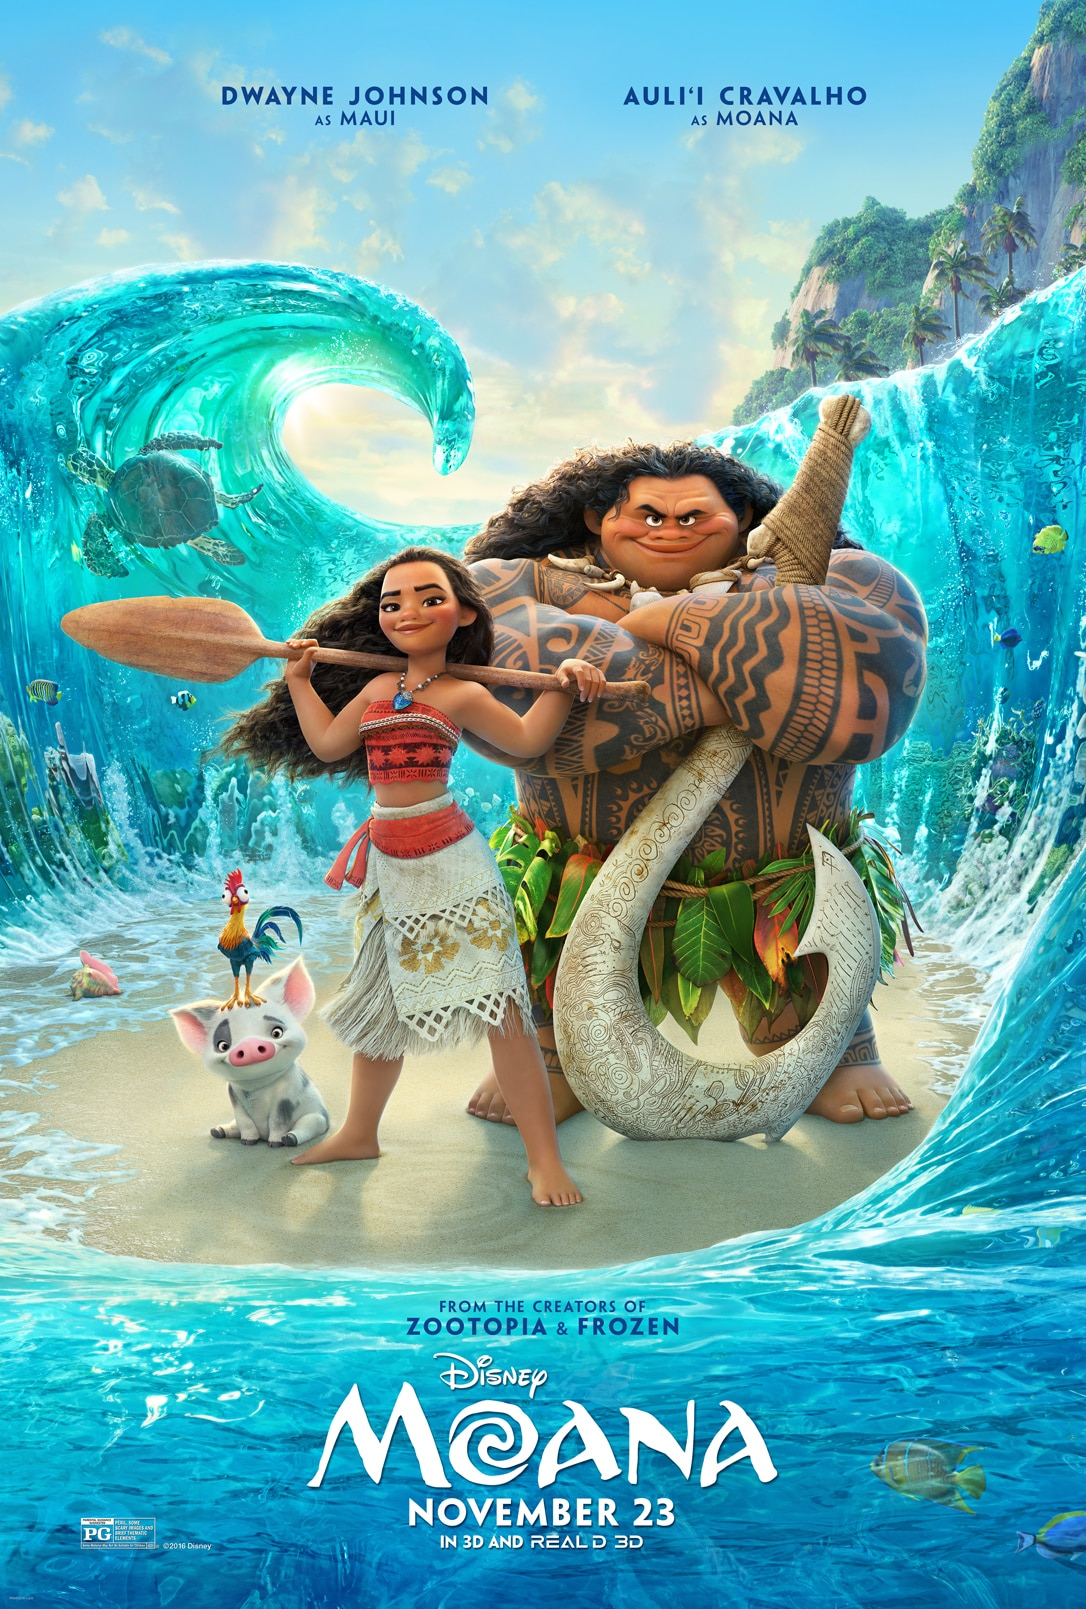 MOANA - 2 New Clips & Soundtrack Details!!!